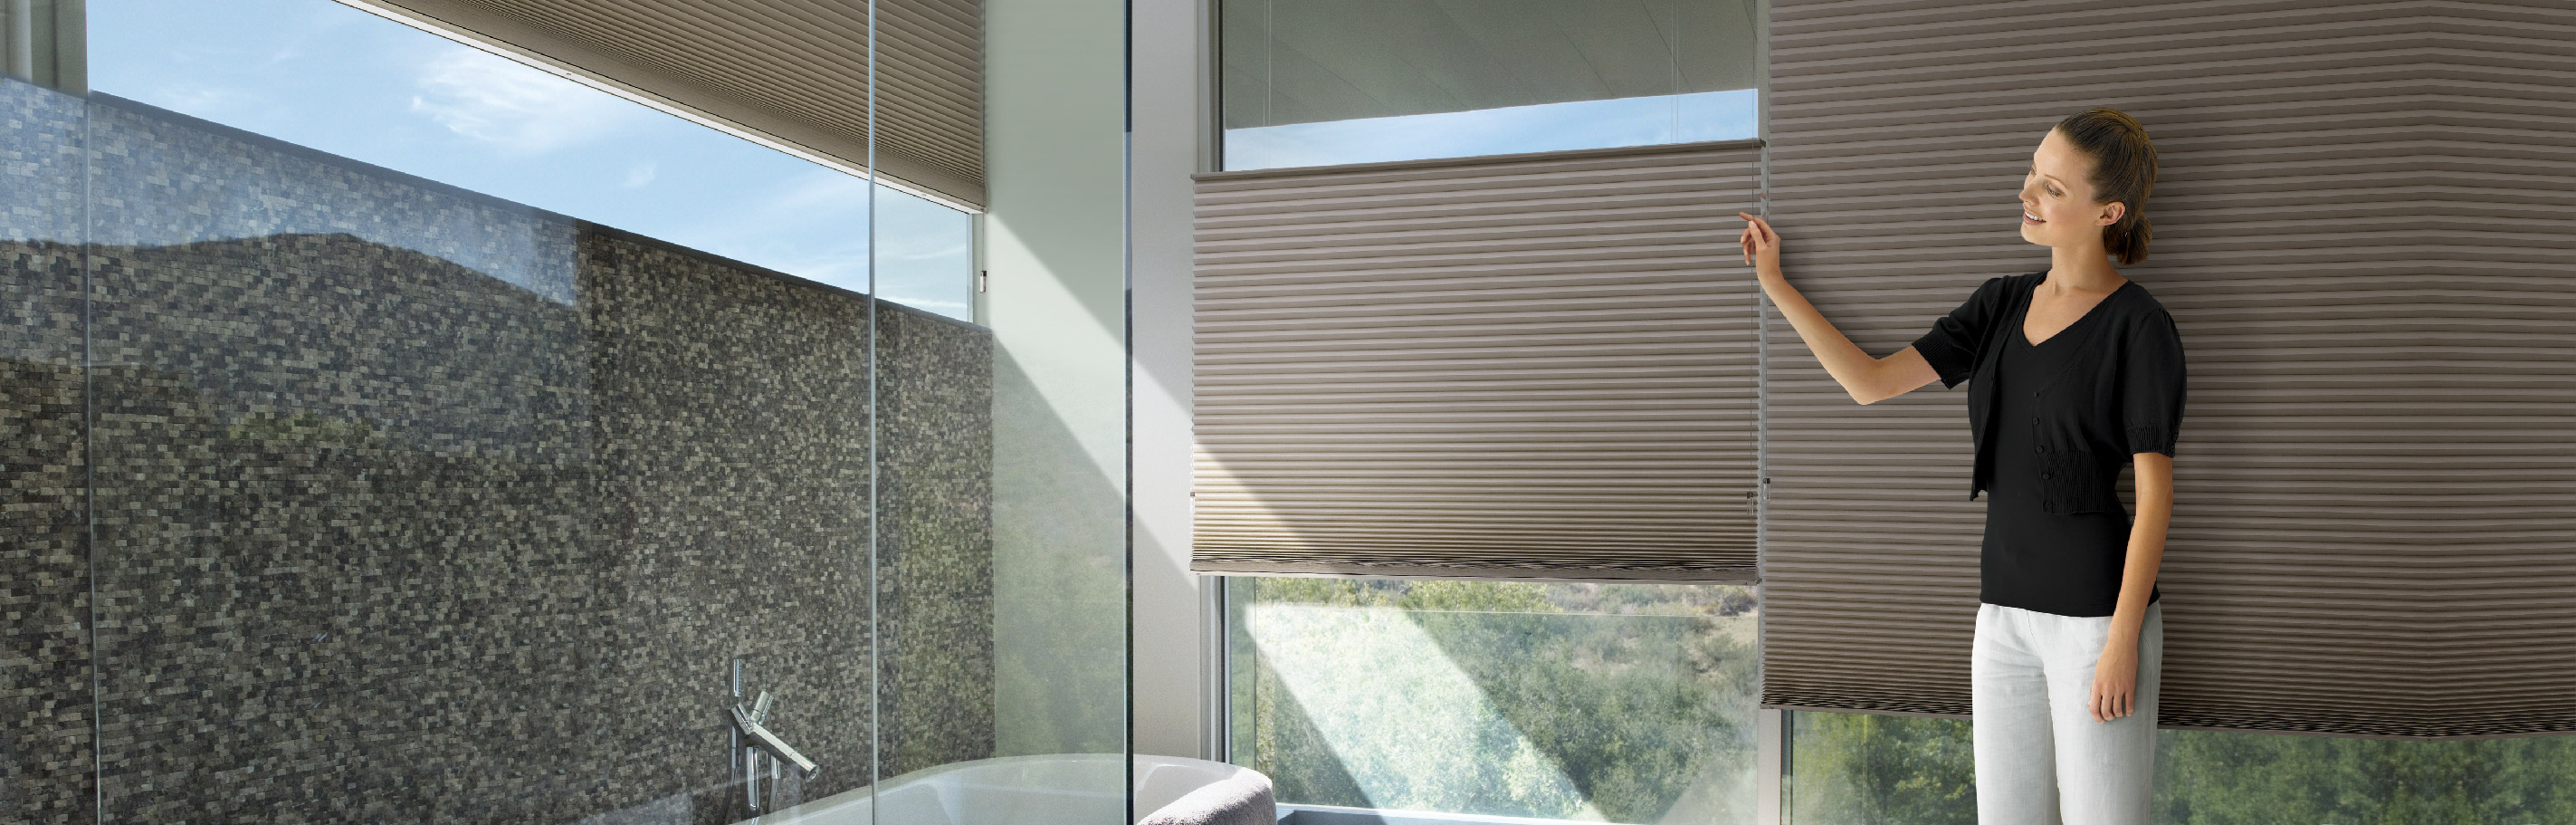 Luxaflex - Products - Softshades and Fabrics - Duette Shades Bottom